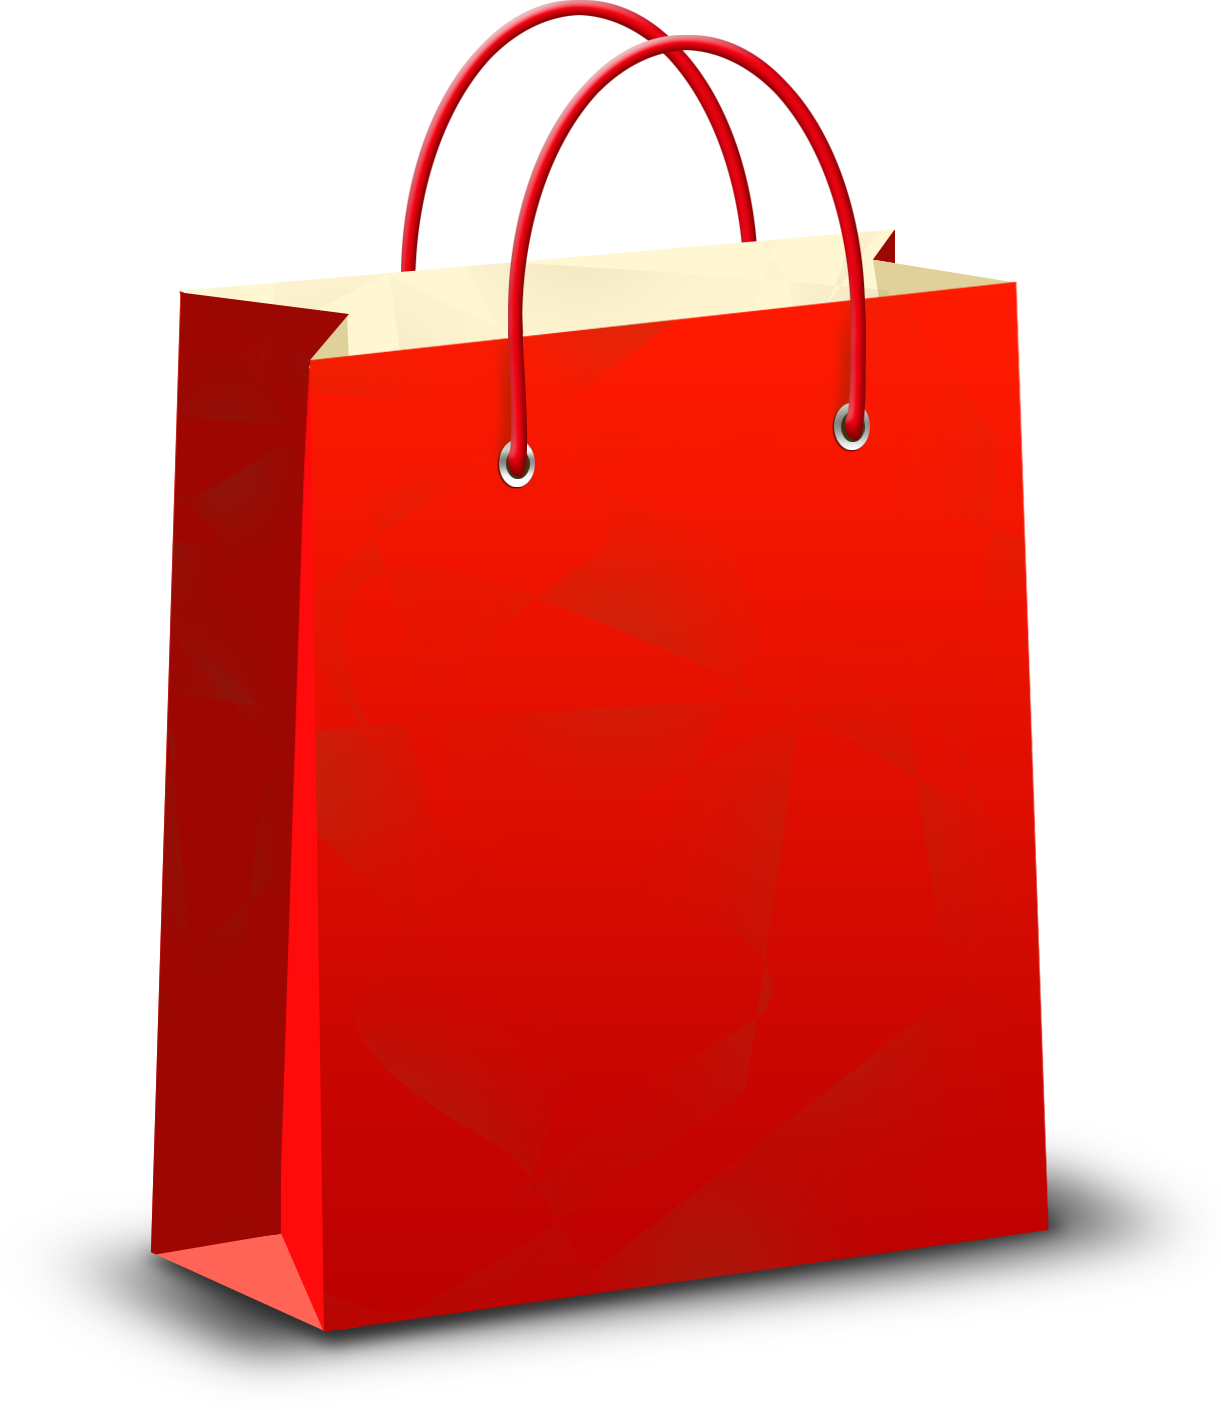 Red Shopping Bag Png Image Purepng Free Transparent Cc0 Png